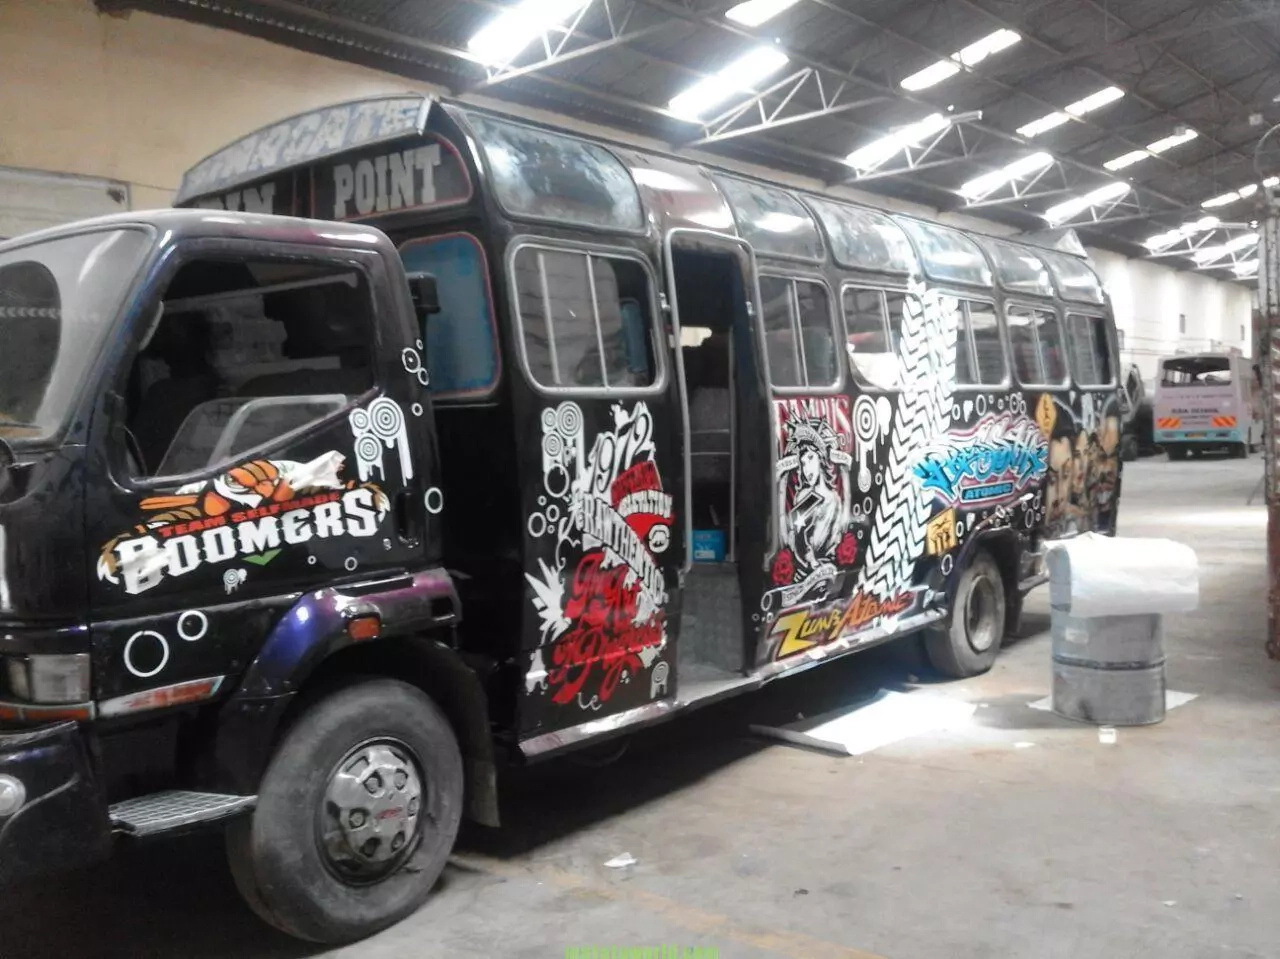 How Eastlands Commuters Are Robbed In These Two Matatus